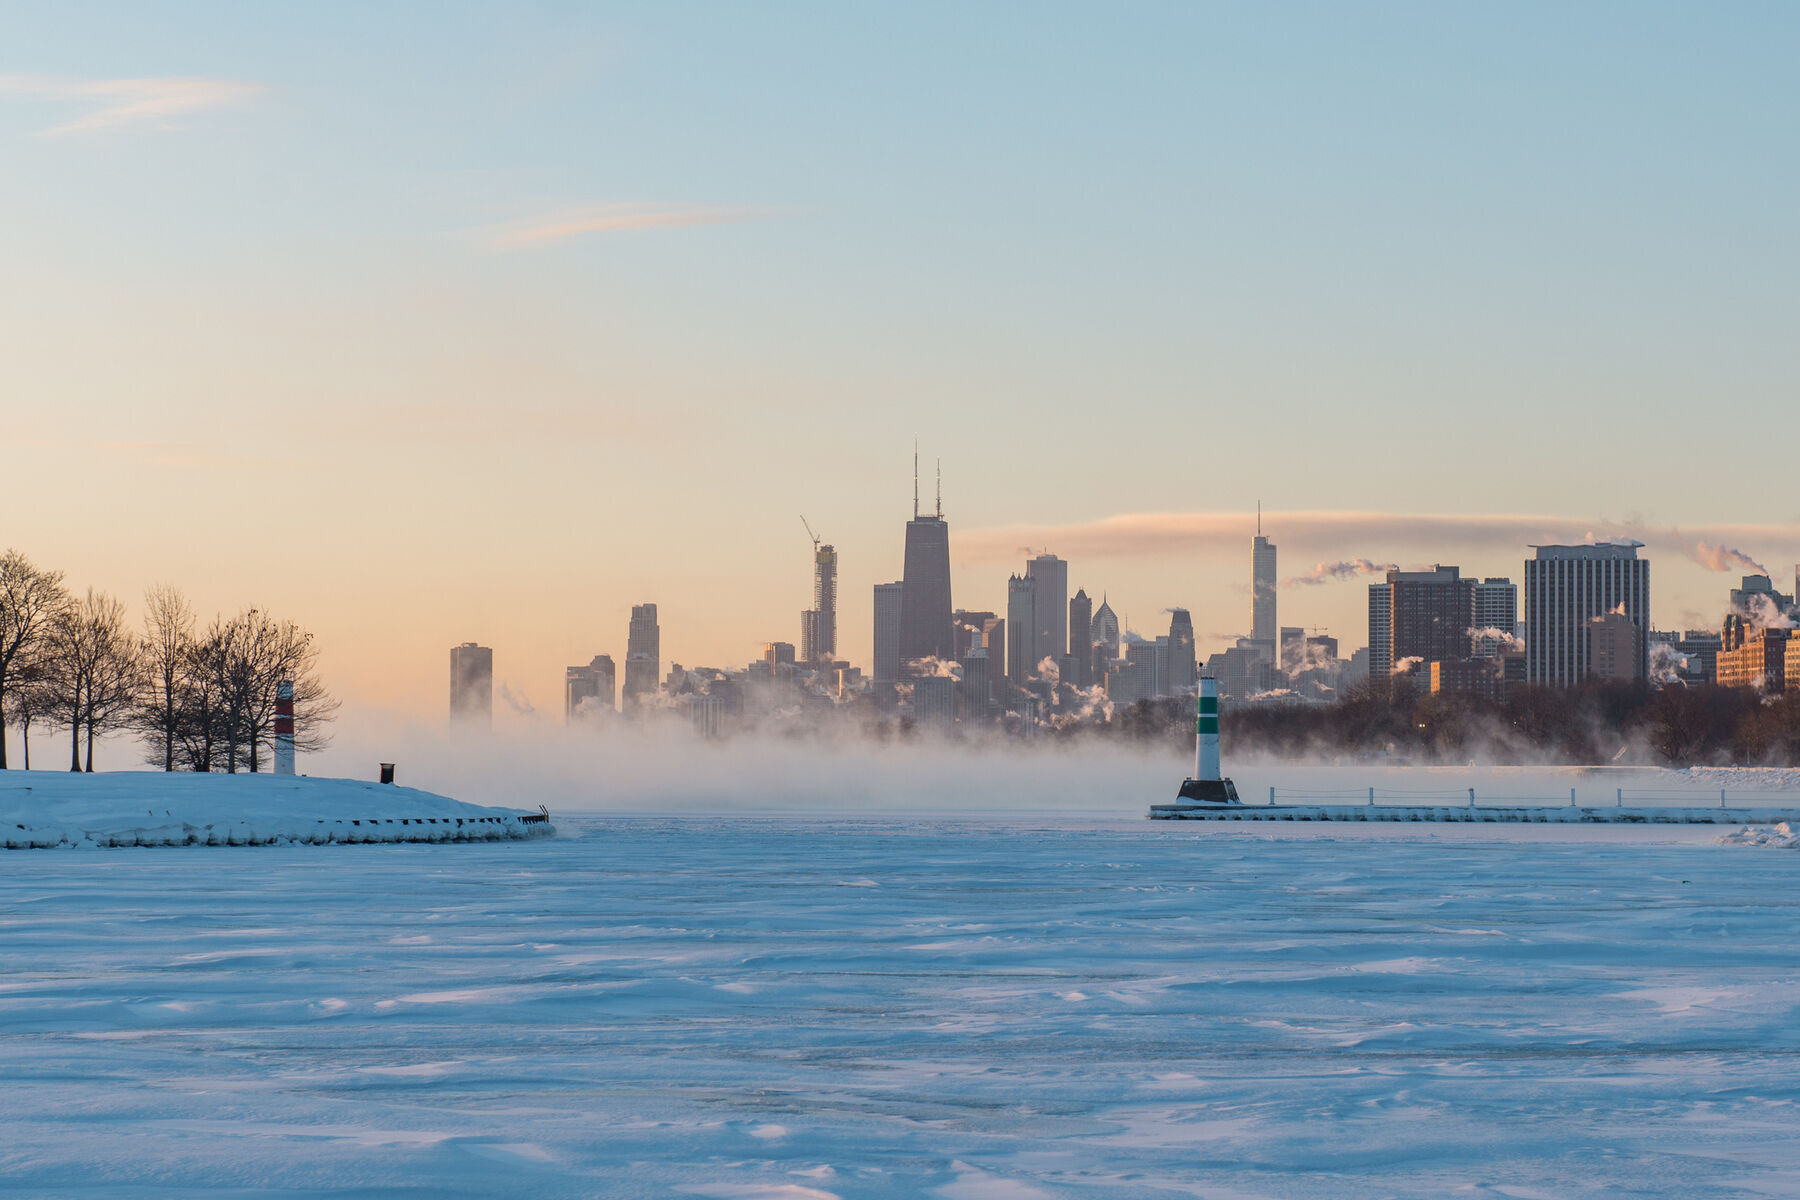 A frozen Lake Michigan and Chicago skyline during the Polar vortex climate event of 2019.